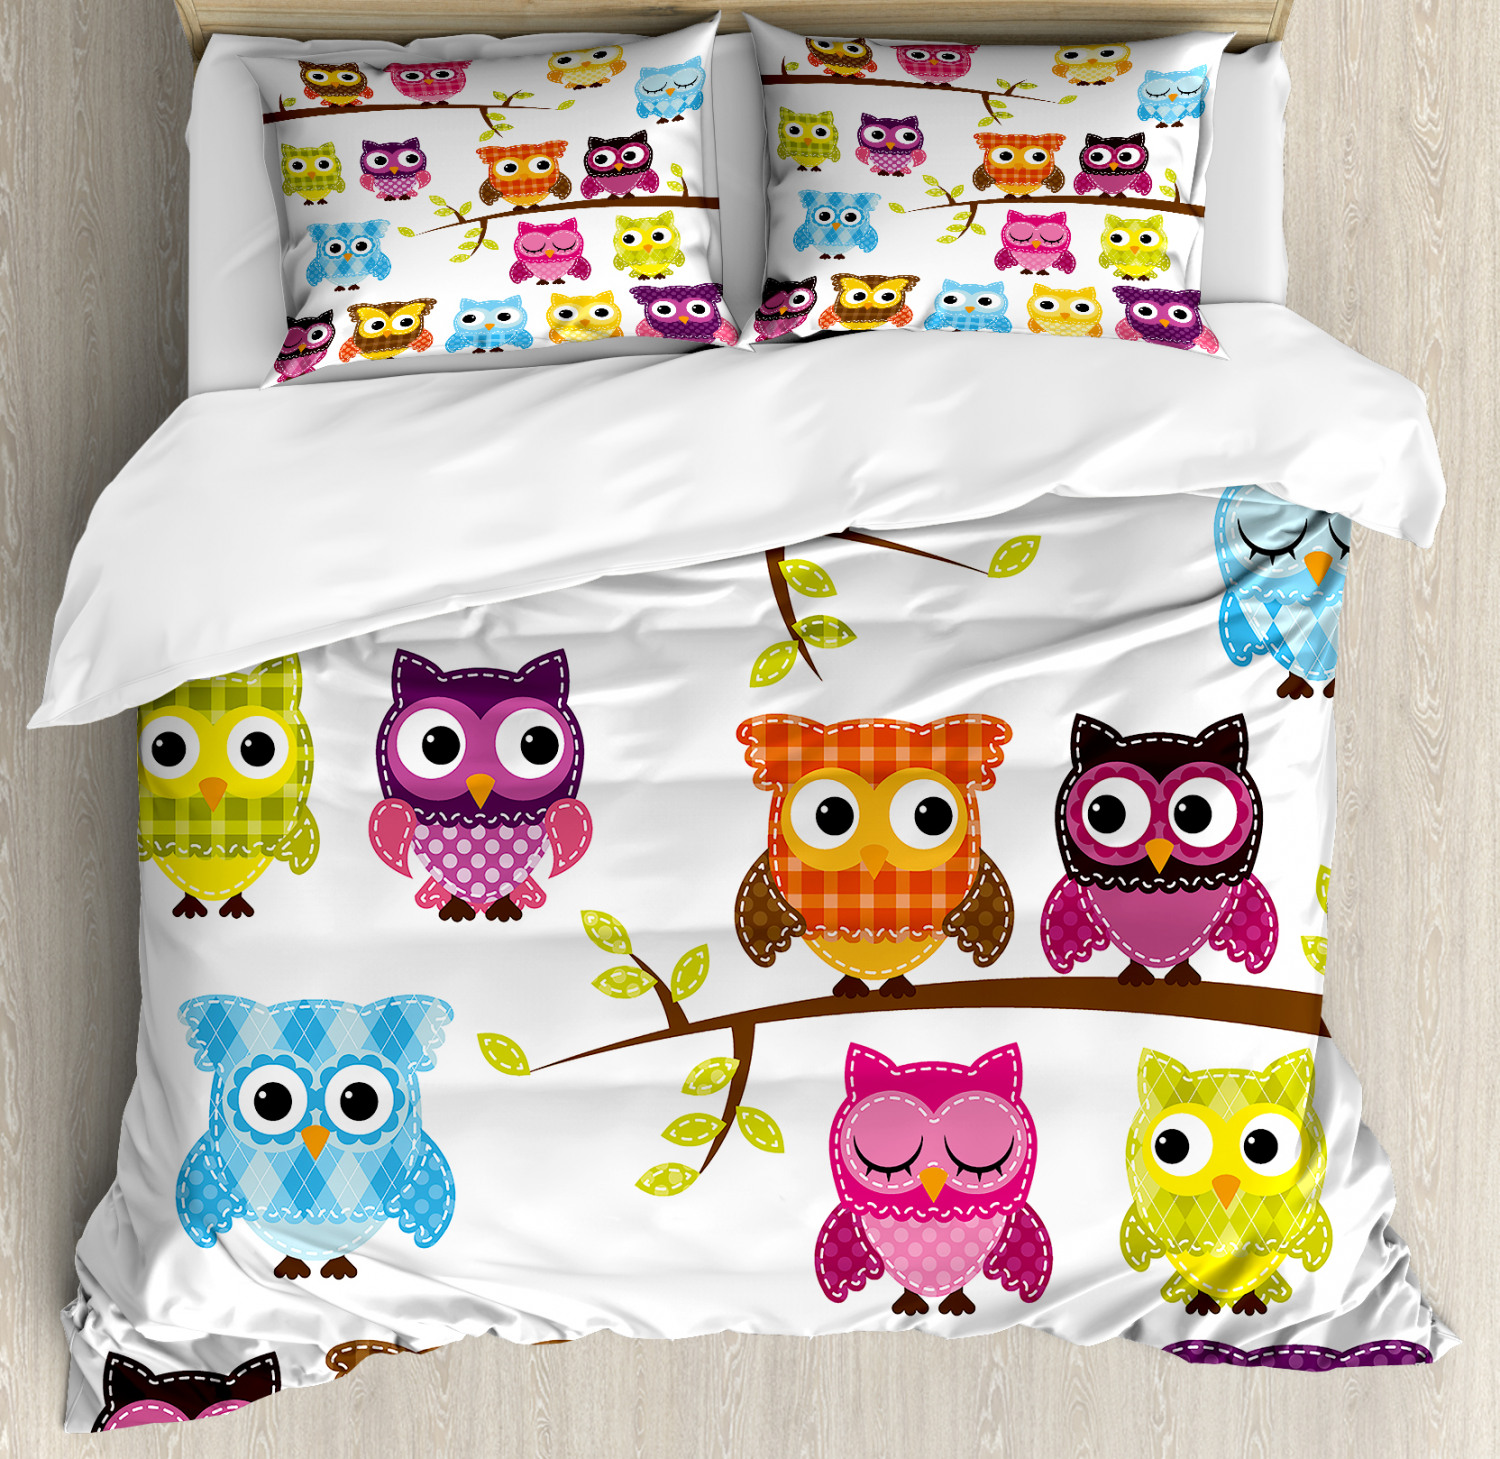 Nursery Duvet Cover Set with Pillow Shams Patchwork Style Owls Print